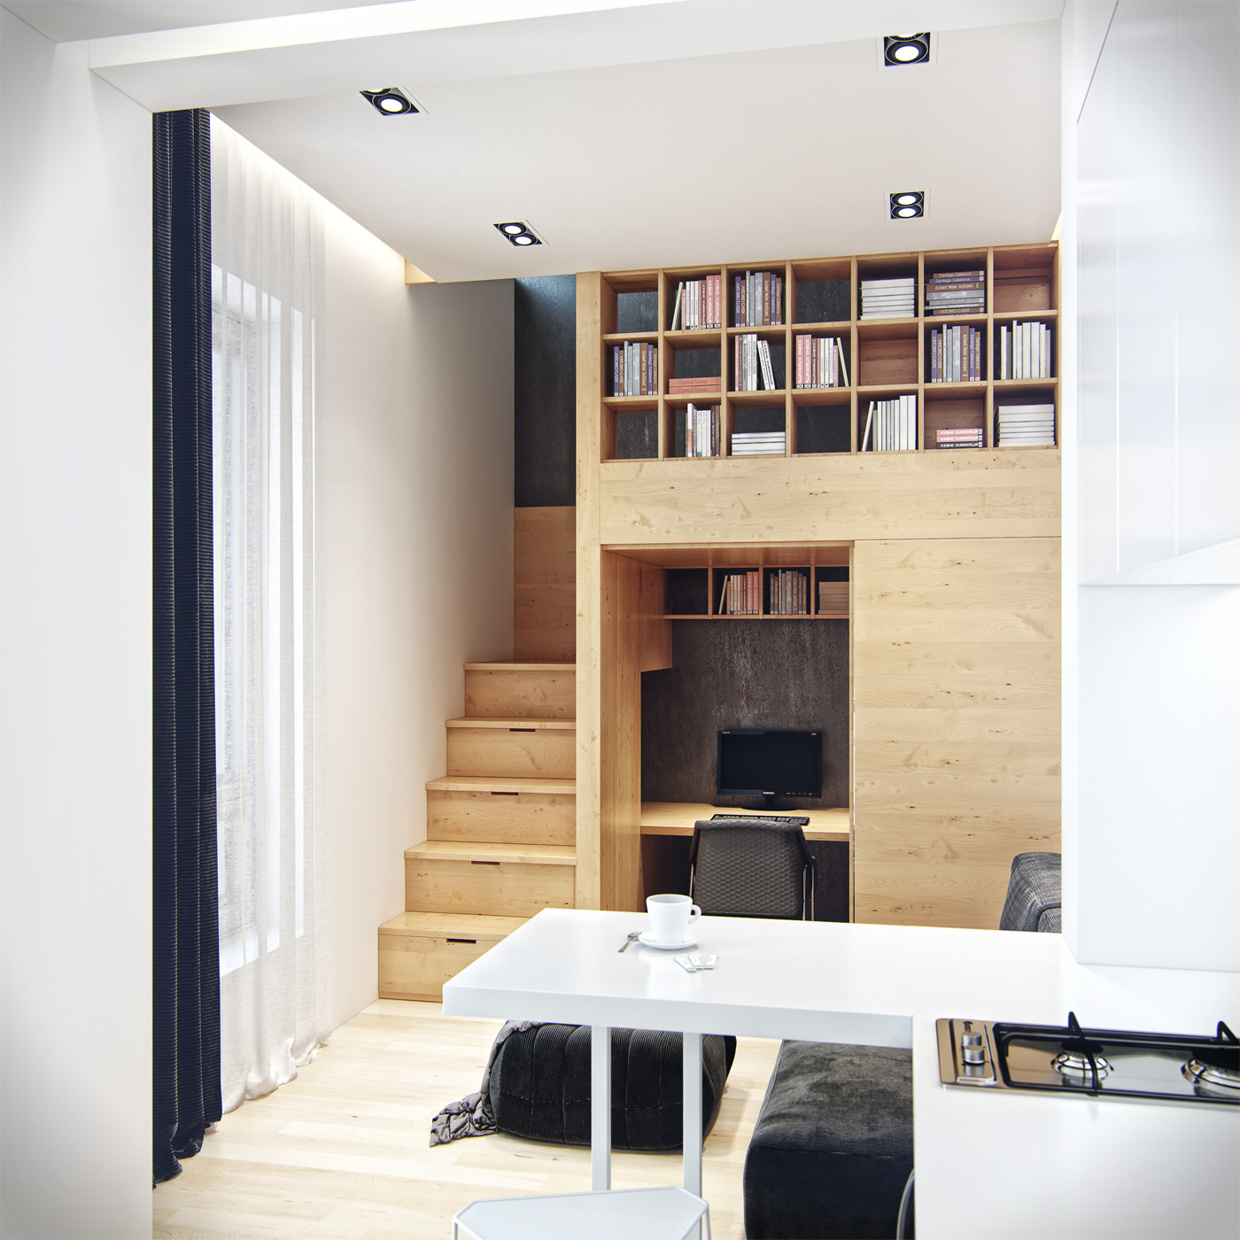 Tiny Loft Space Apartment  Your No1 source of Architecture and Interior design news